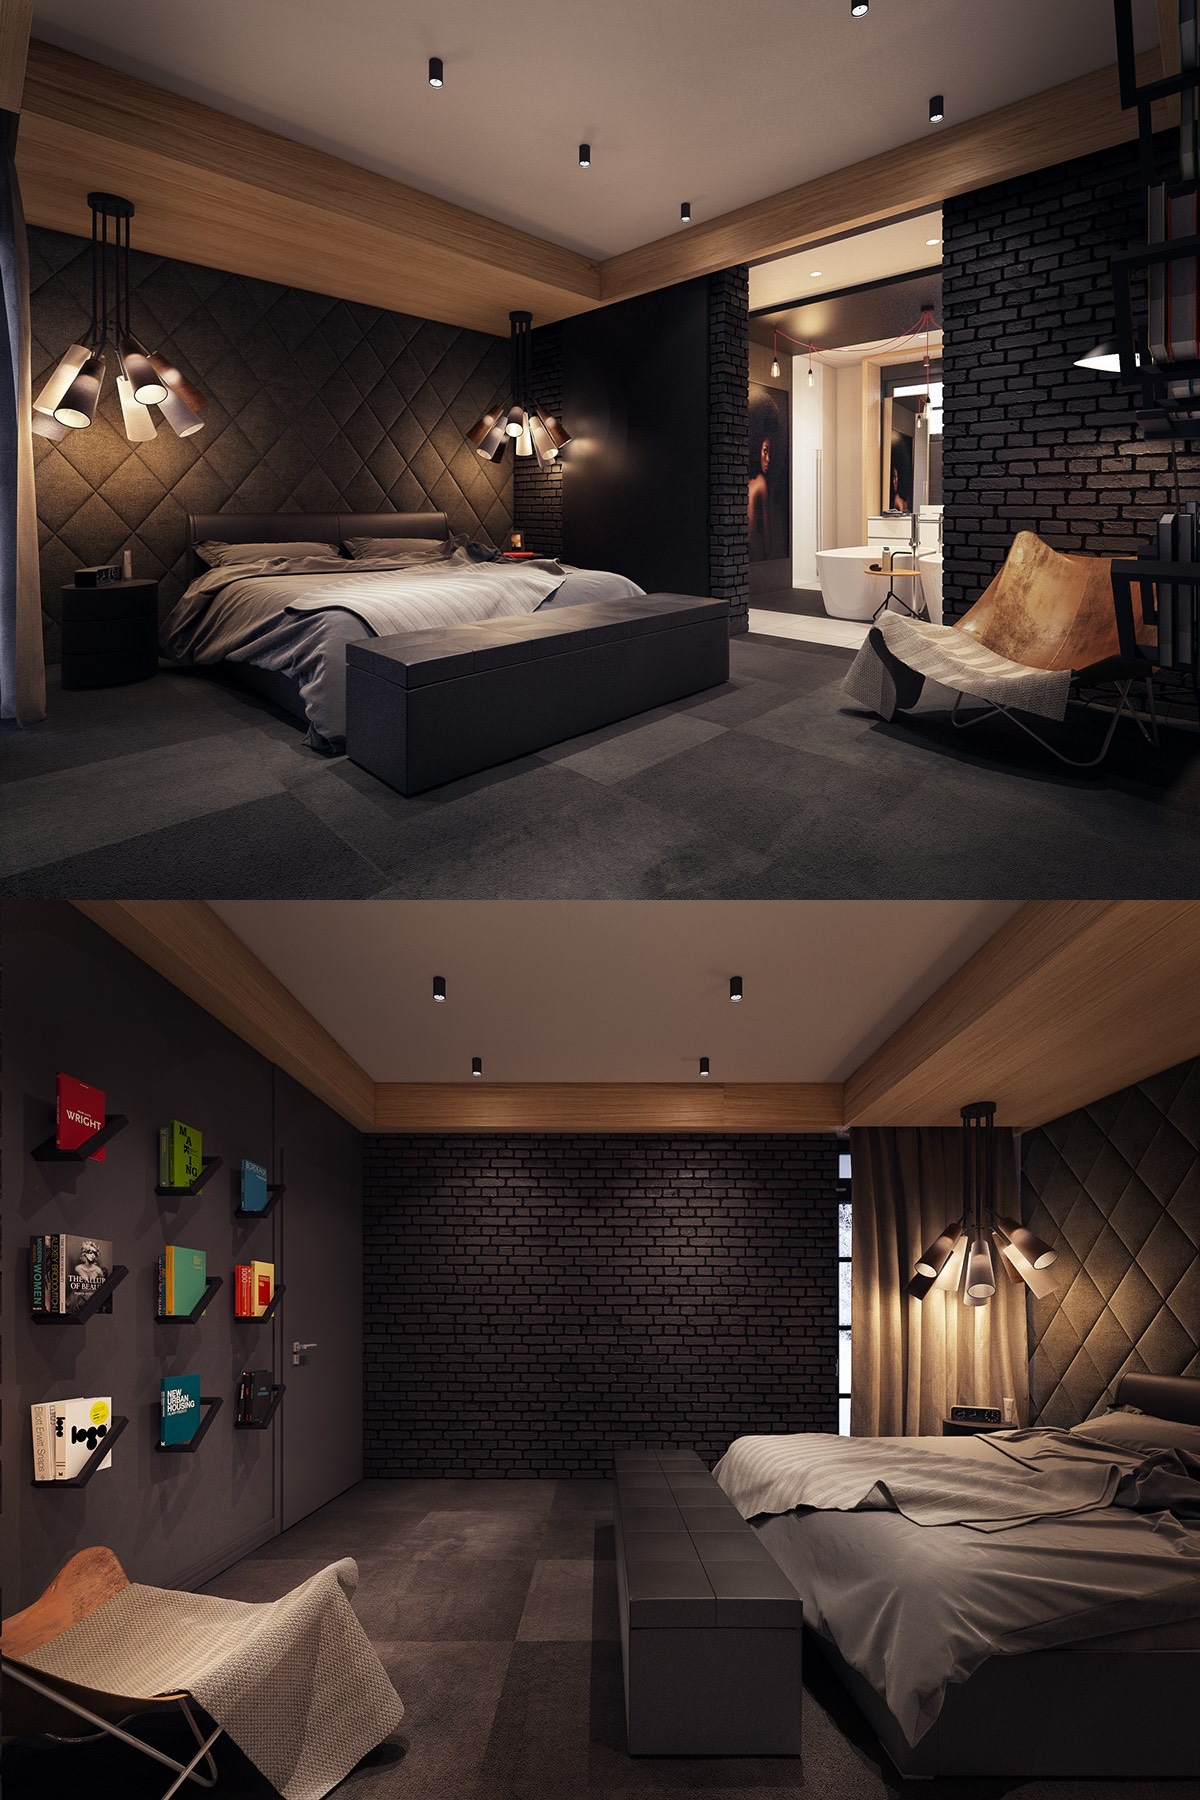 Dark color bedroom decorating ideas shows a luxury and for Dark wall decor ideas